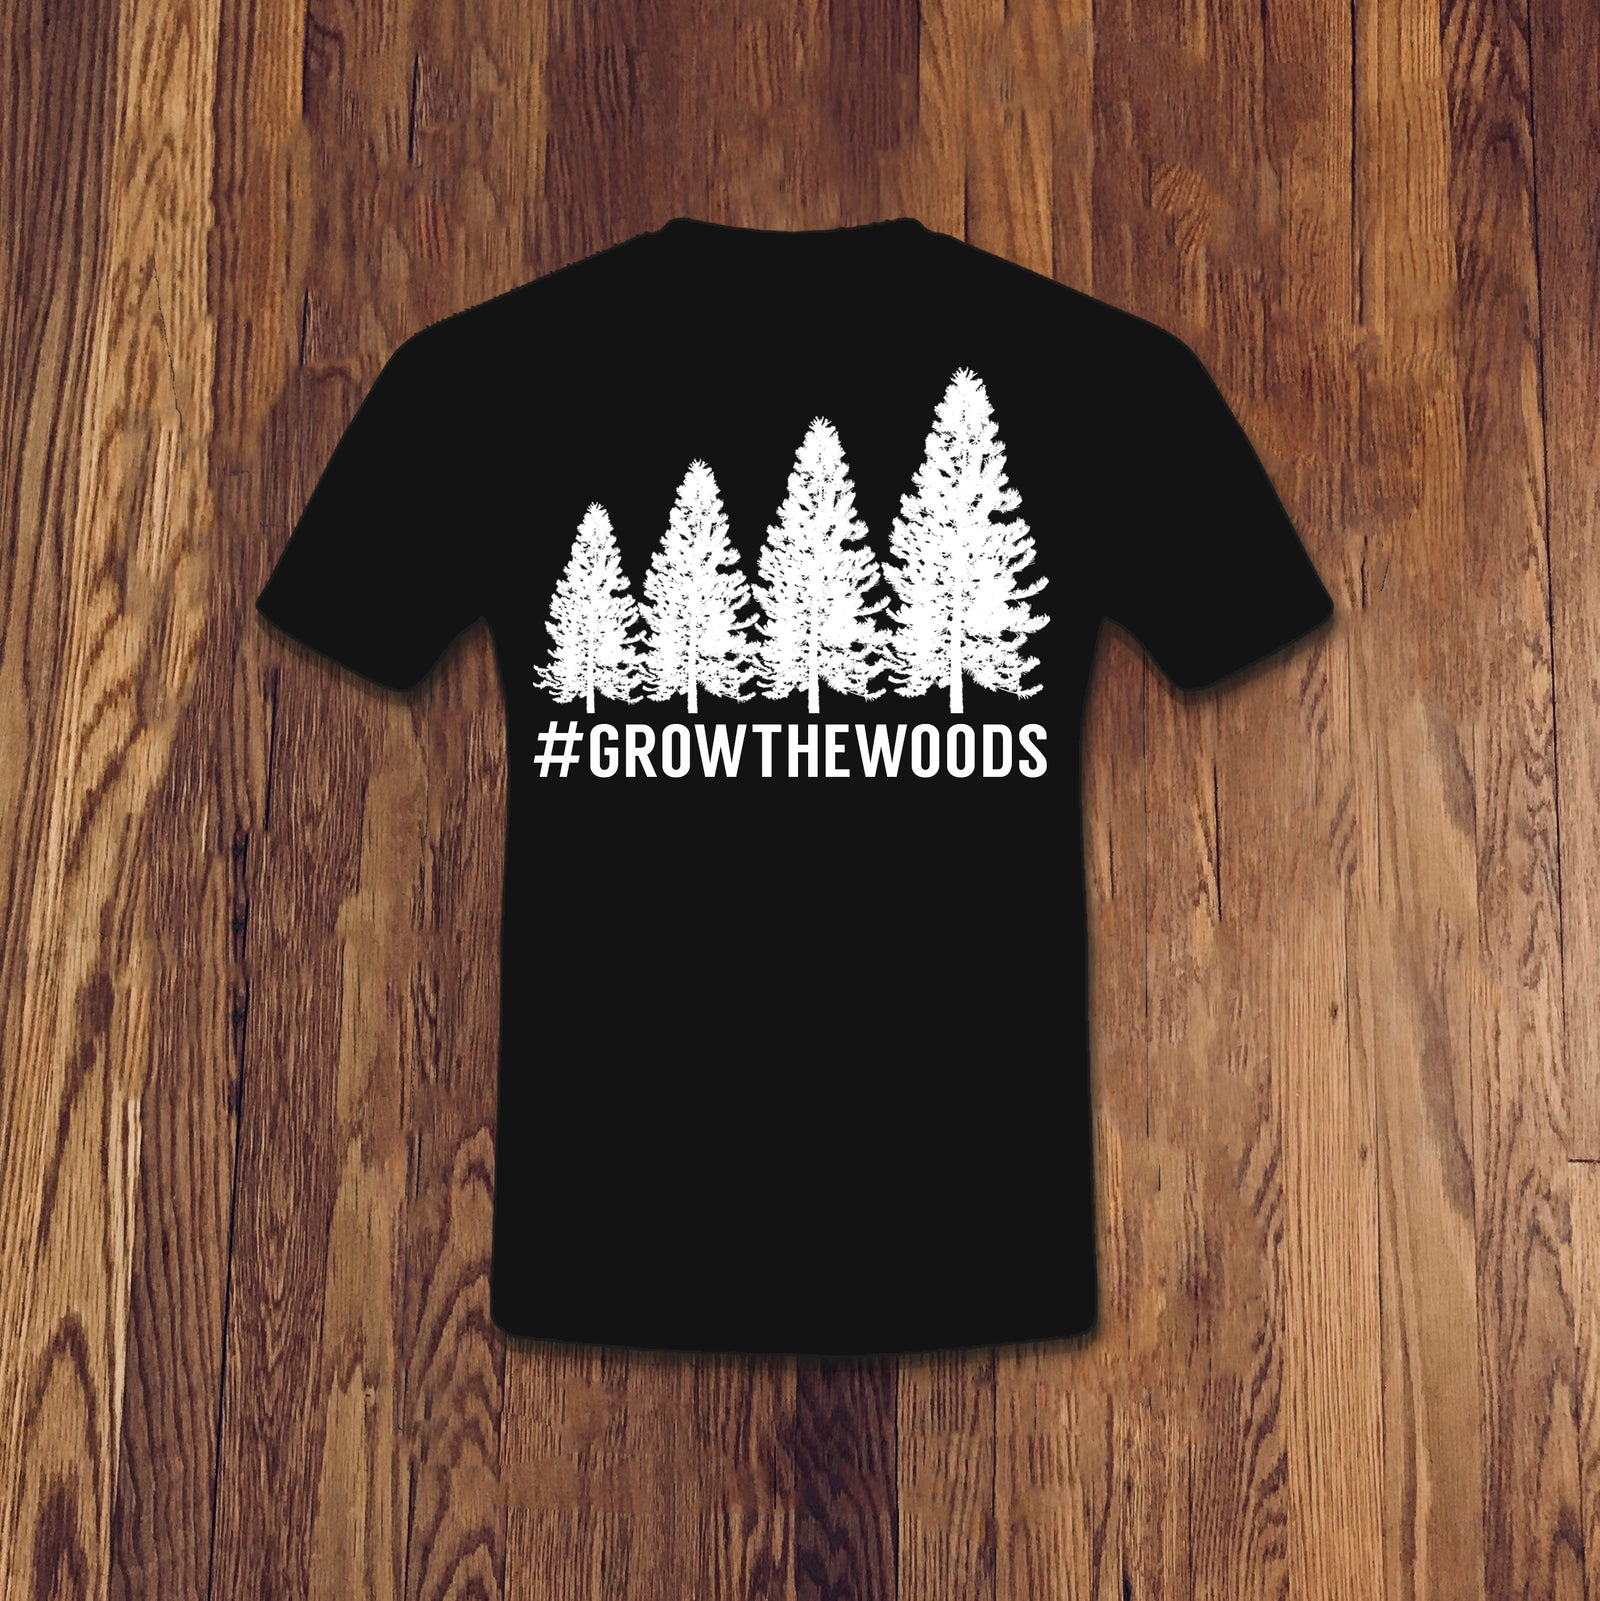 #GROWTHEWOODS TEE